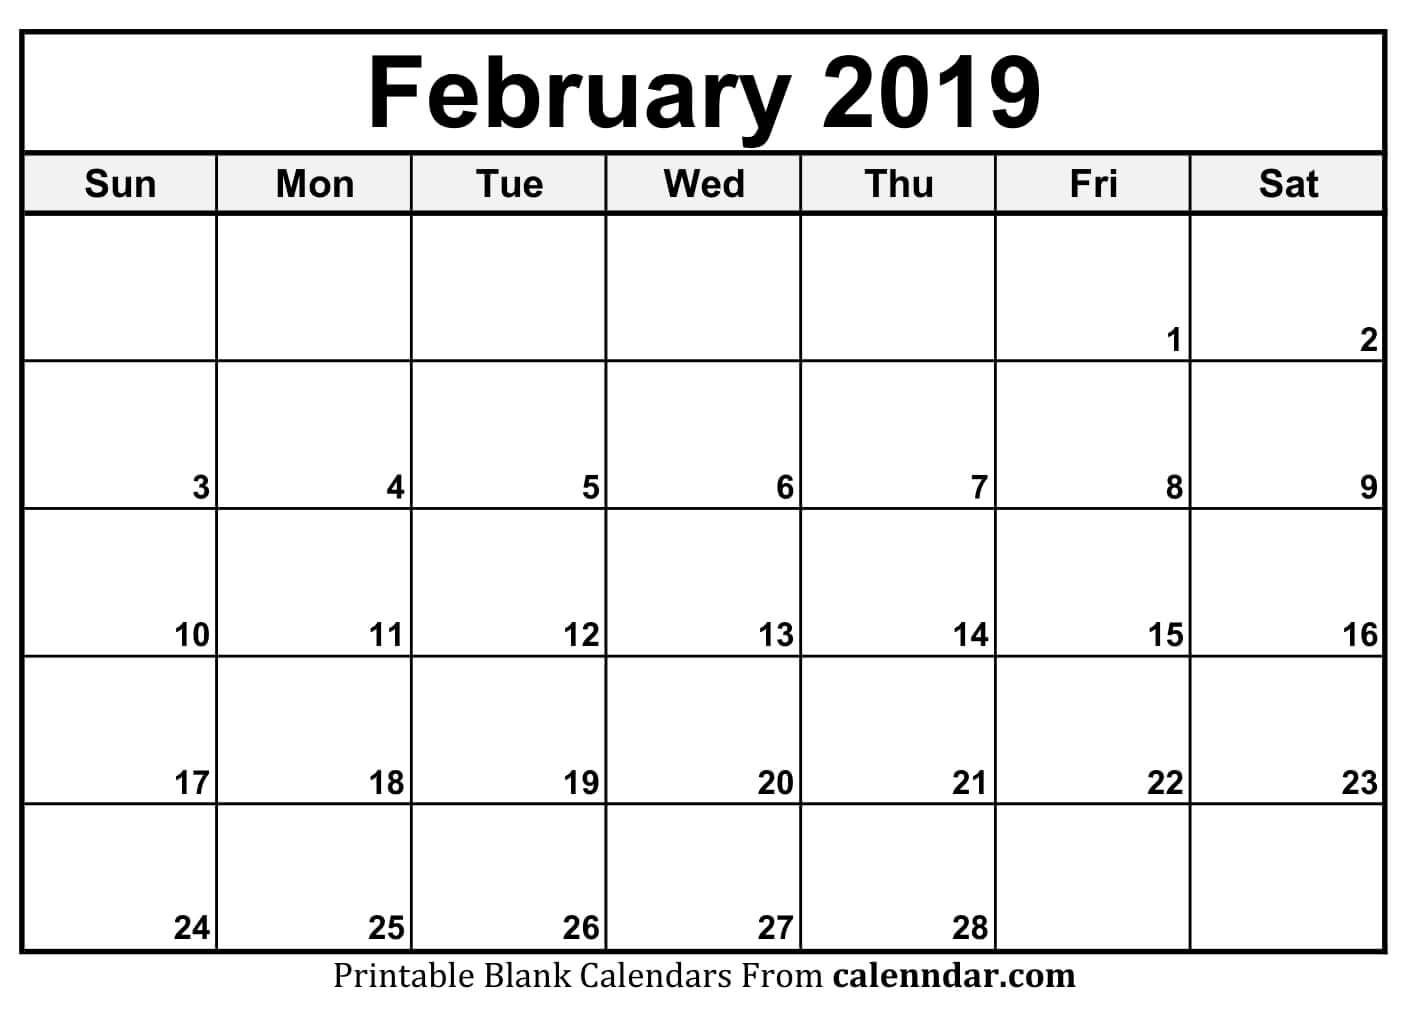 Calendar Pages February 2019 Free Printable Feb 2019 Calendar | Blank February 2019 Calendar